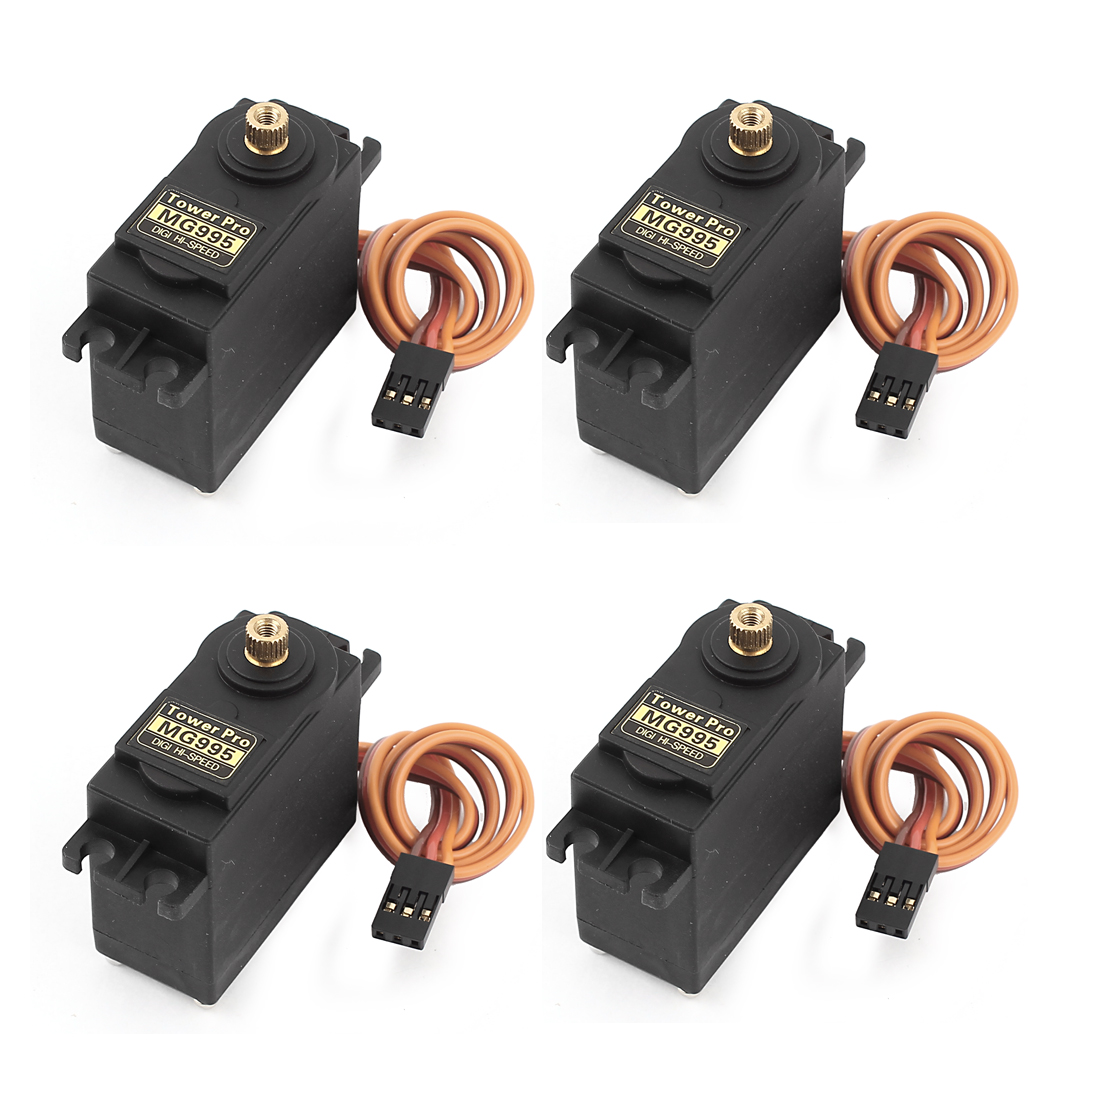 4pcs MG995 Hi-Speed Torque Metal Gear Servo + Horns for RC Airplane Boat Car